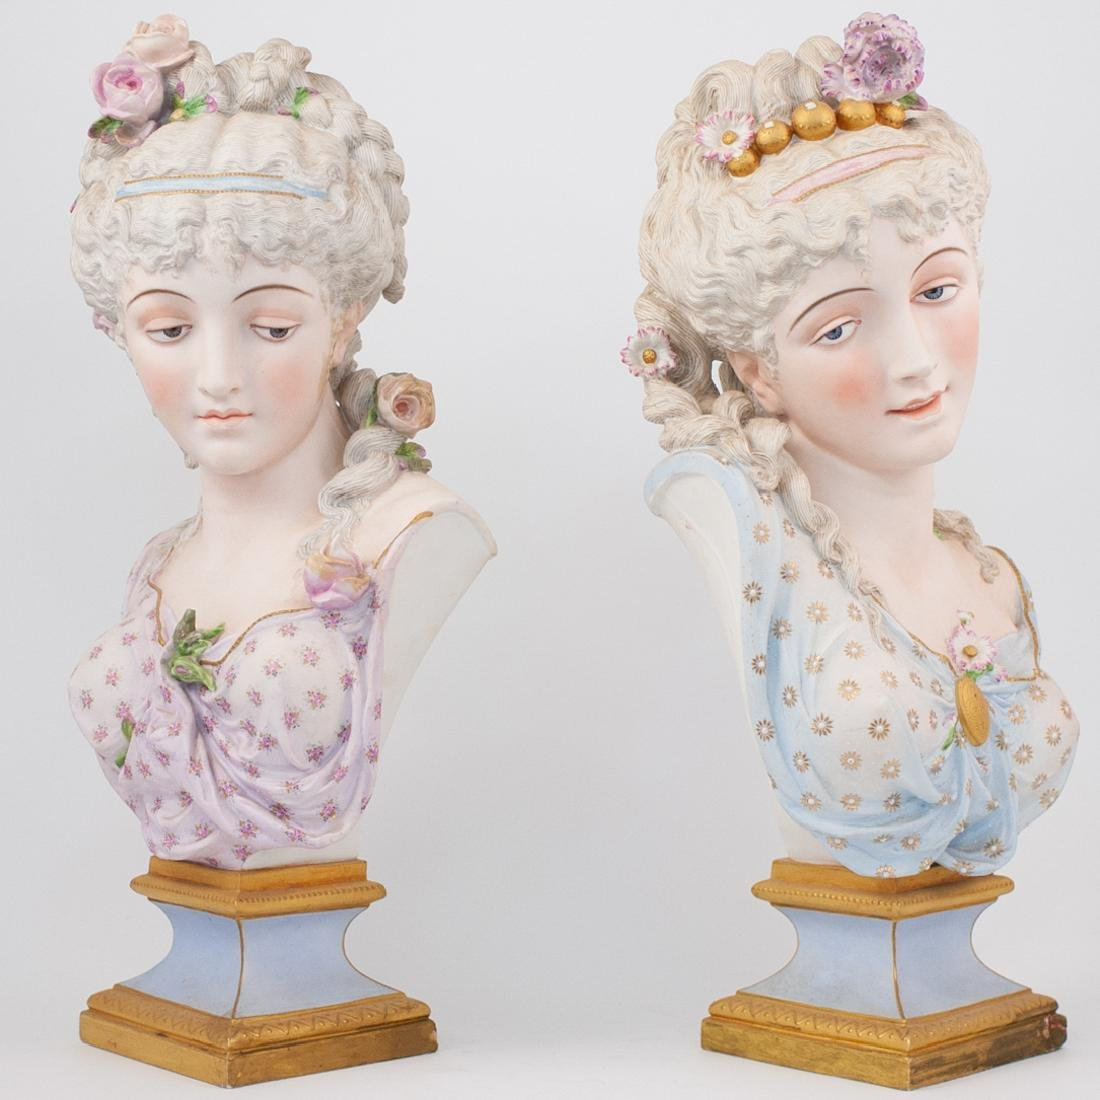 Paul Duboy (French, 1830-1887) Hand Painted Porcelain - 4